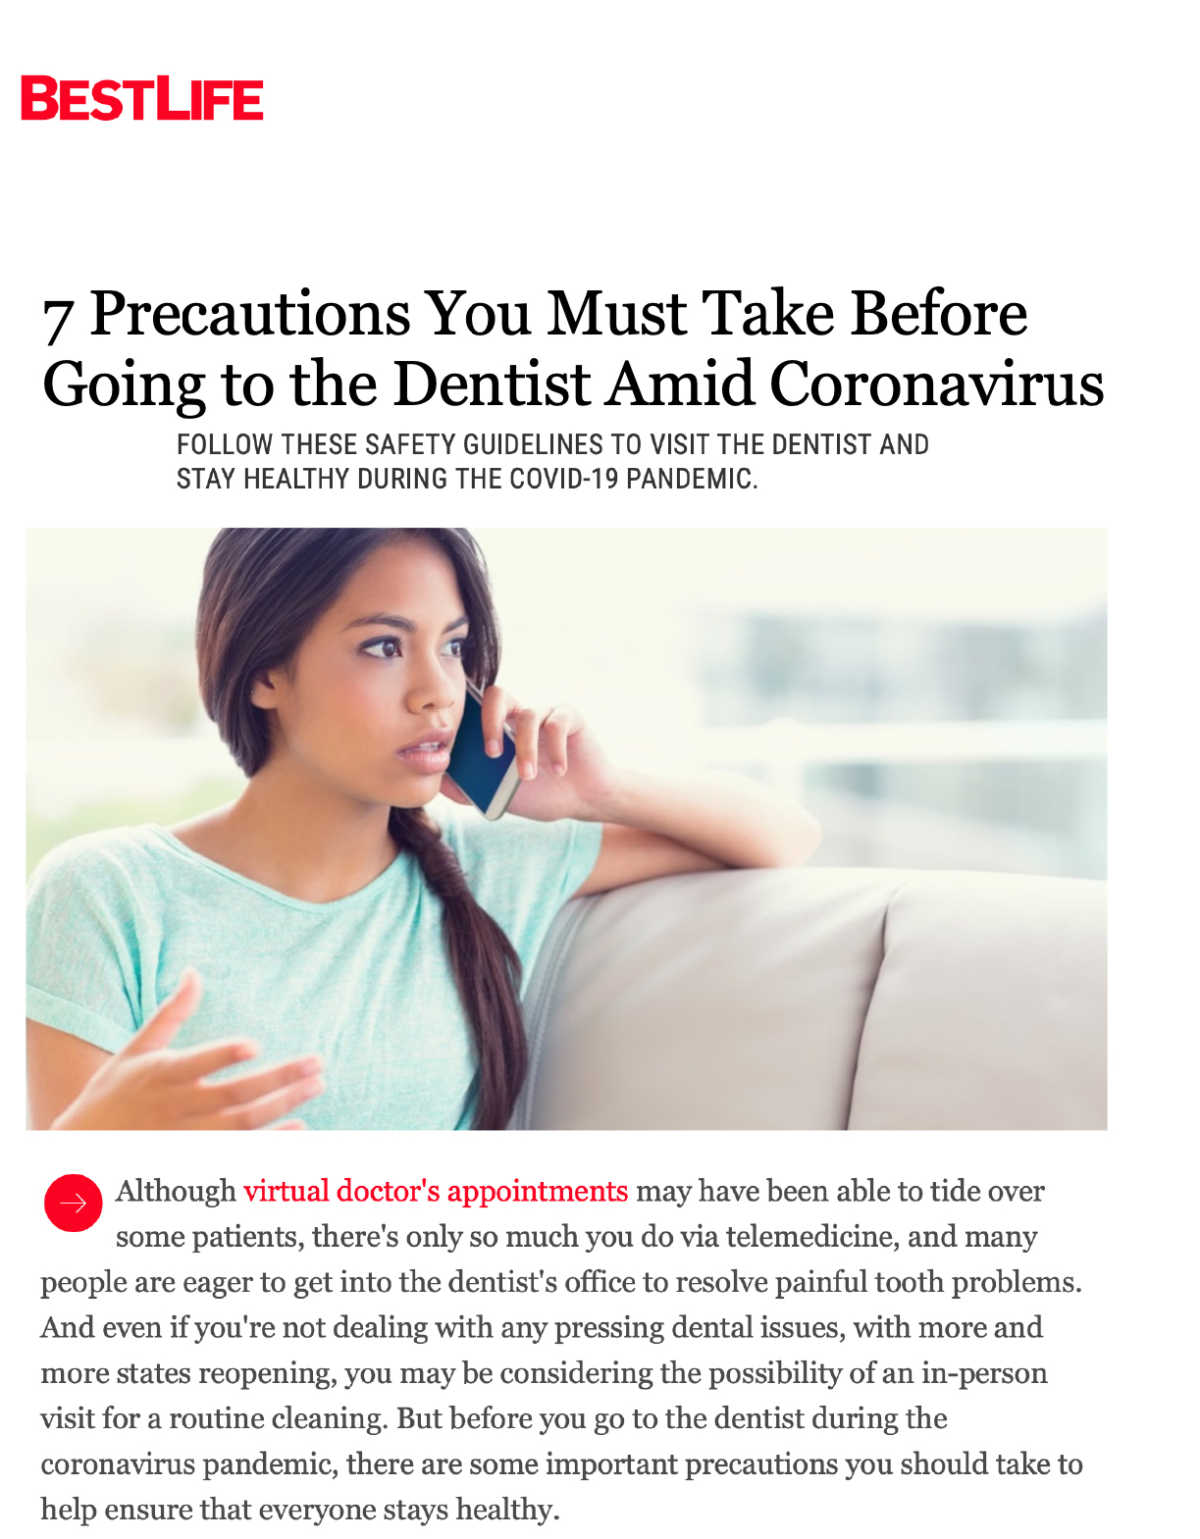 Link to a Bestlife article about precautions to take when going to the dentist amid Coronavirus.